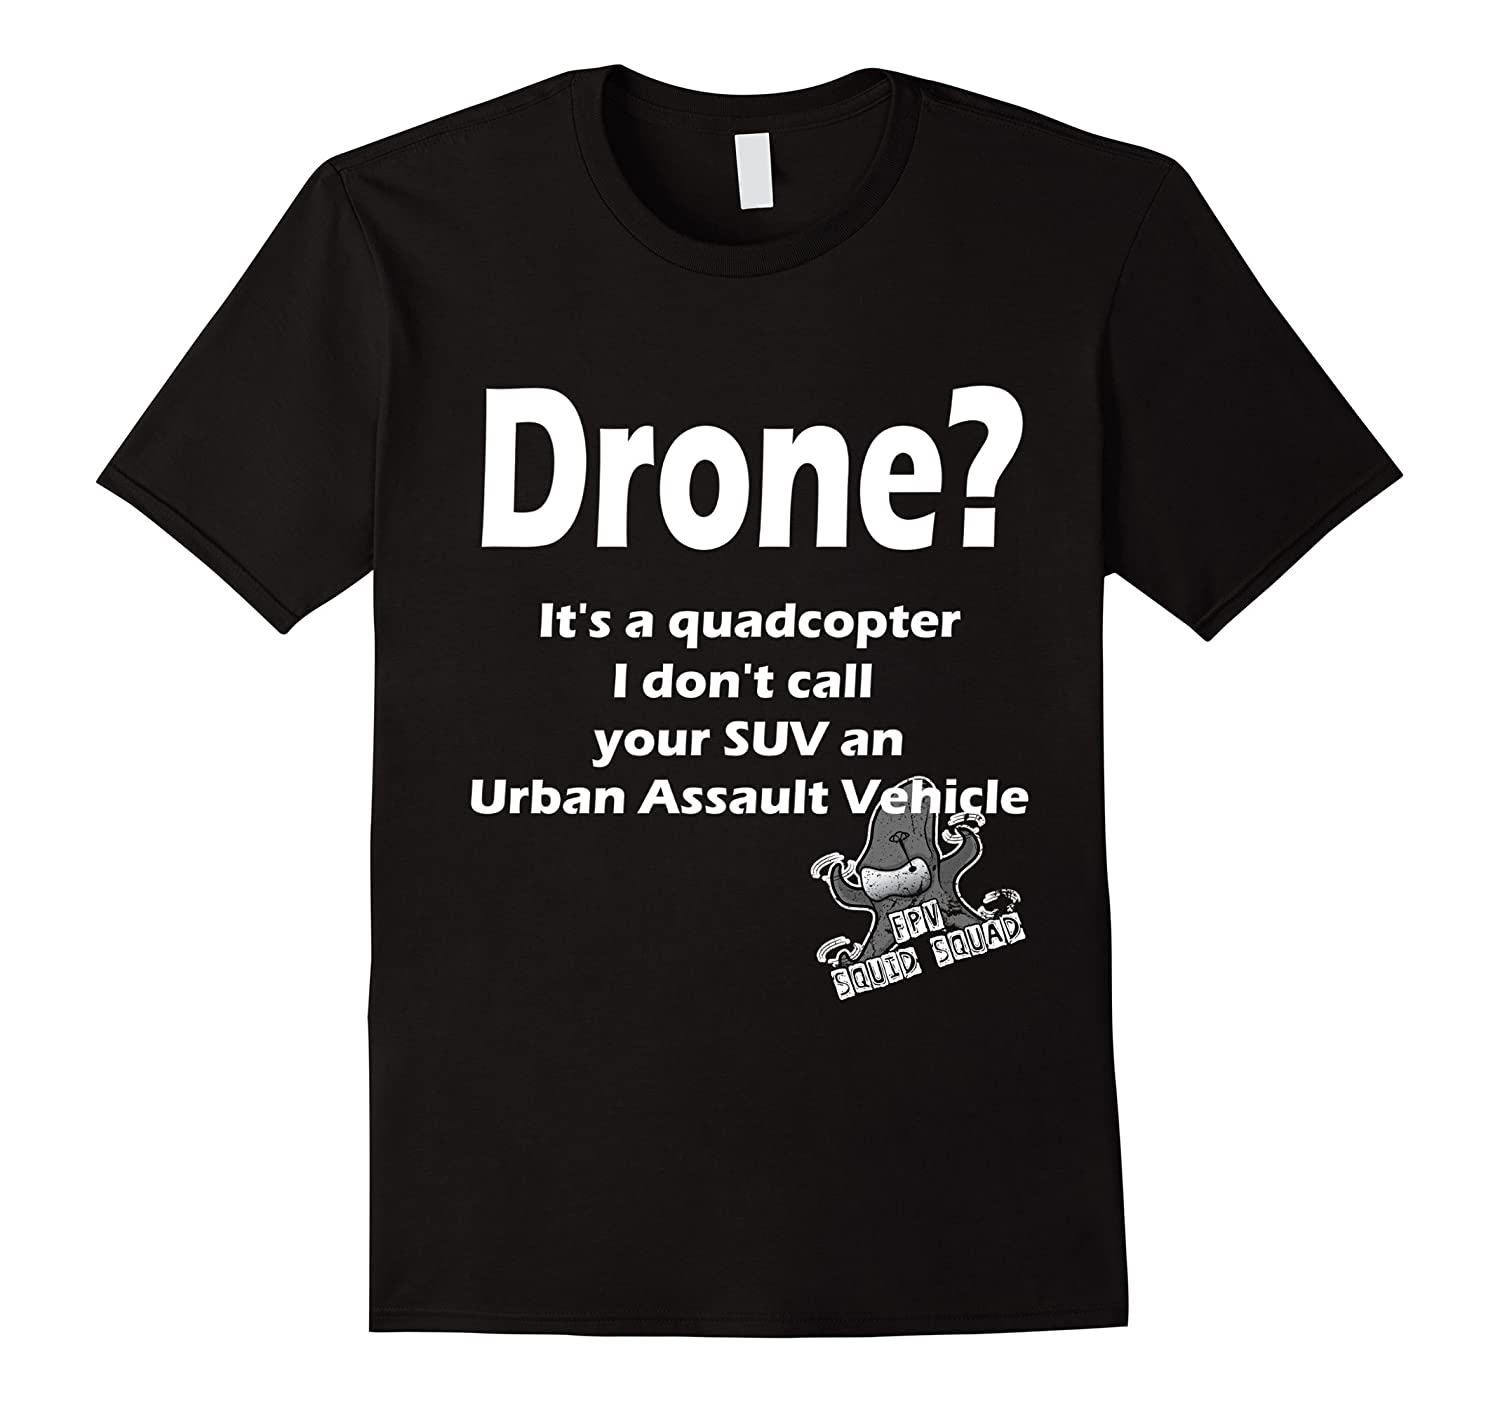 Funny FPV quadcopter t-shirt It's not a drone-FL